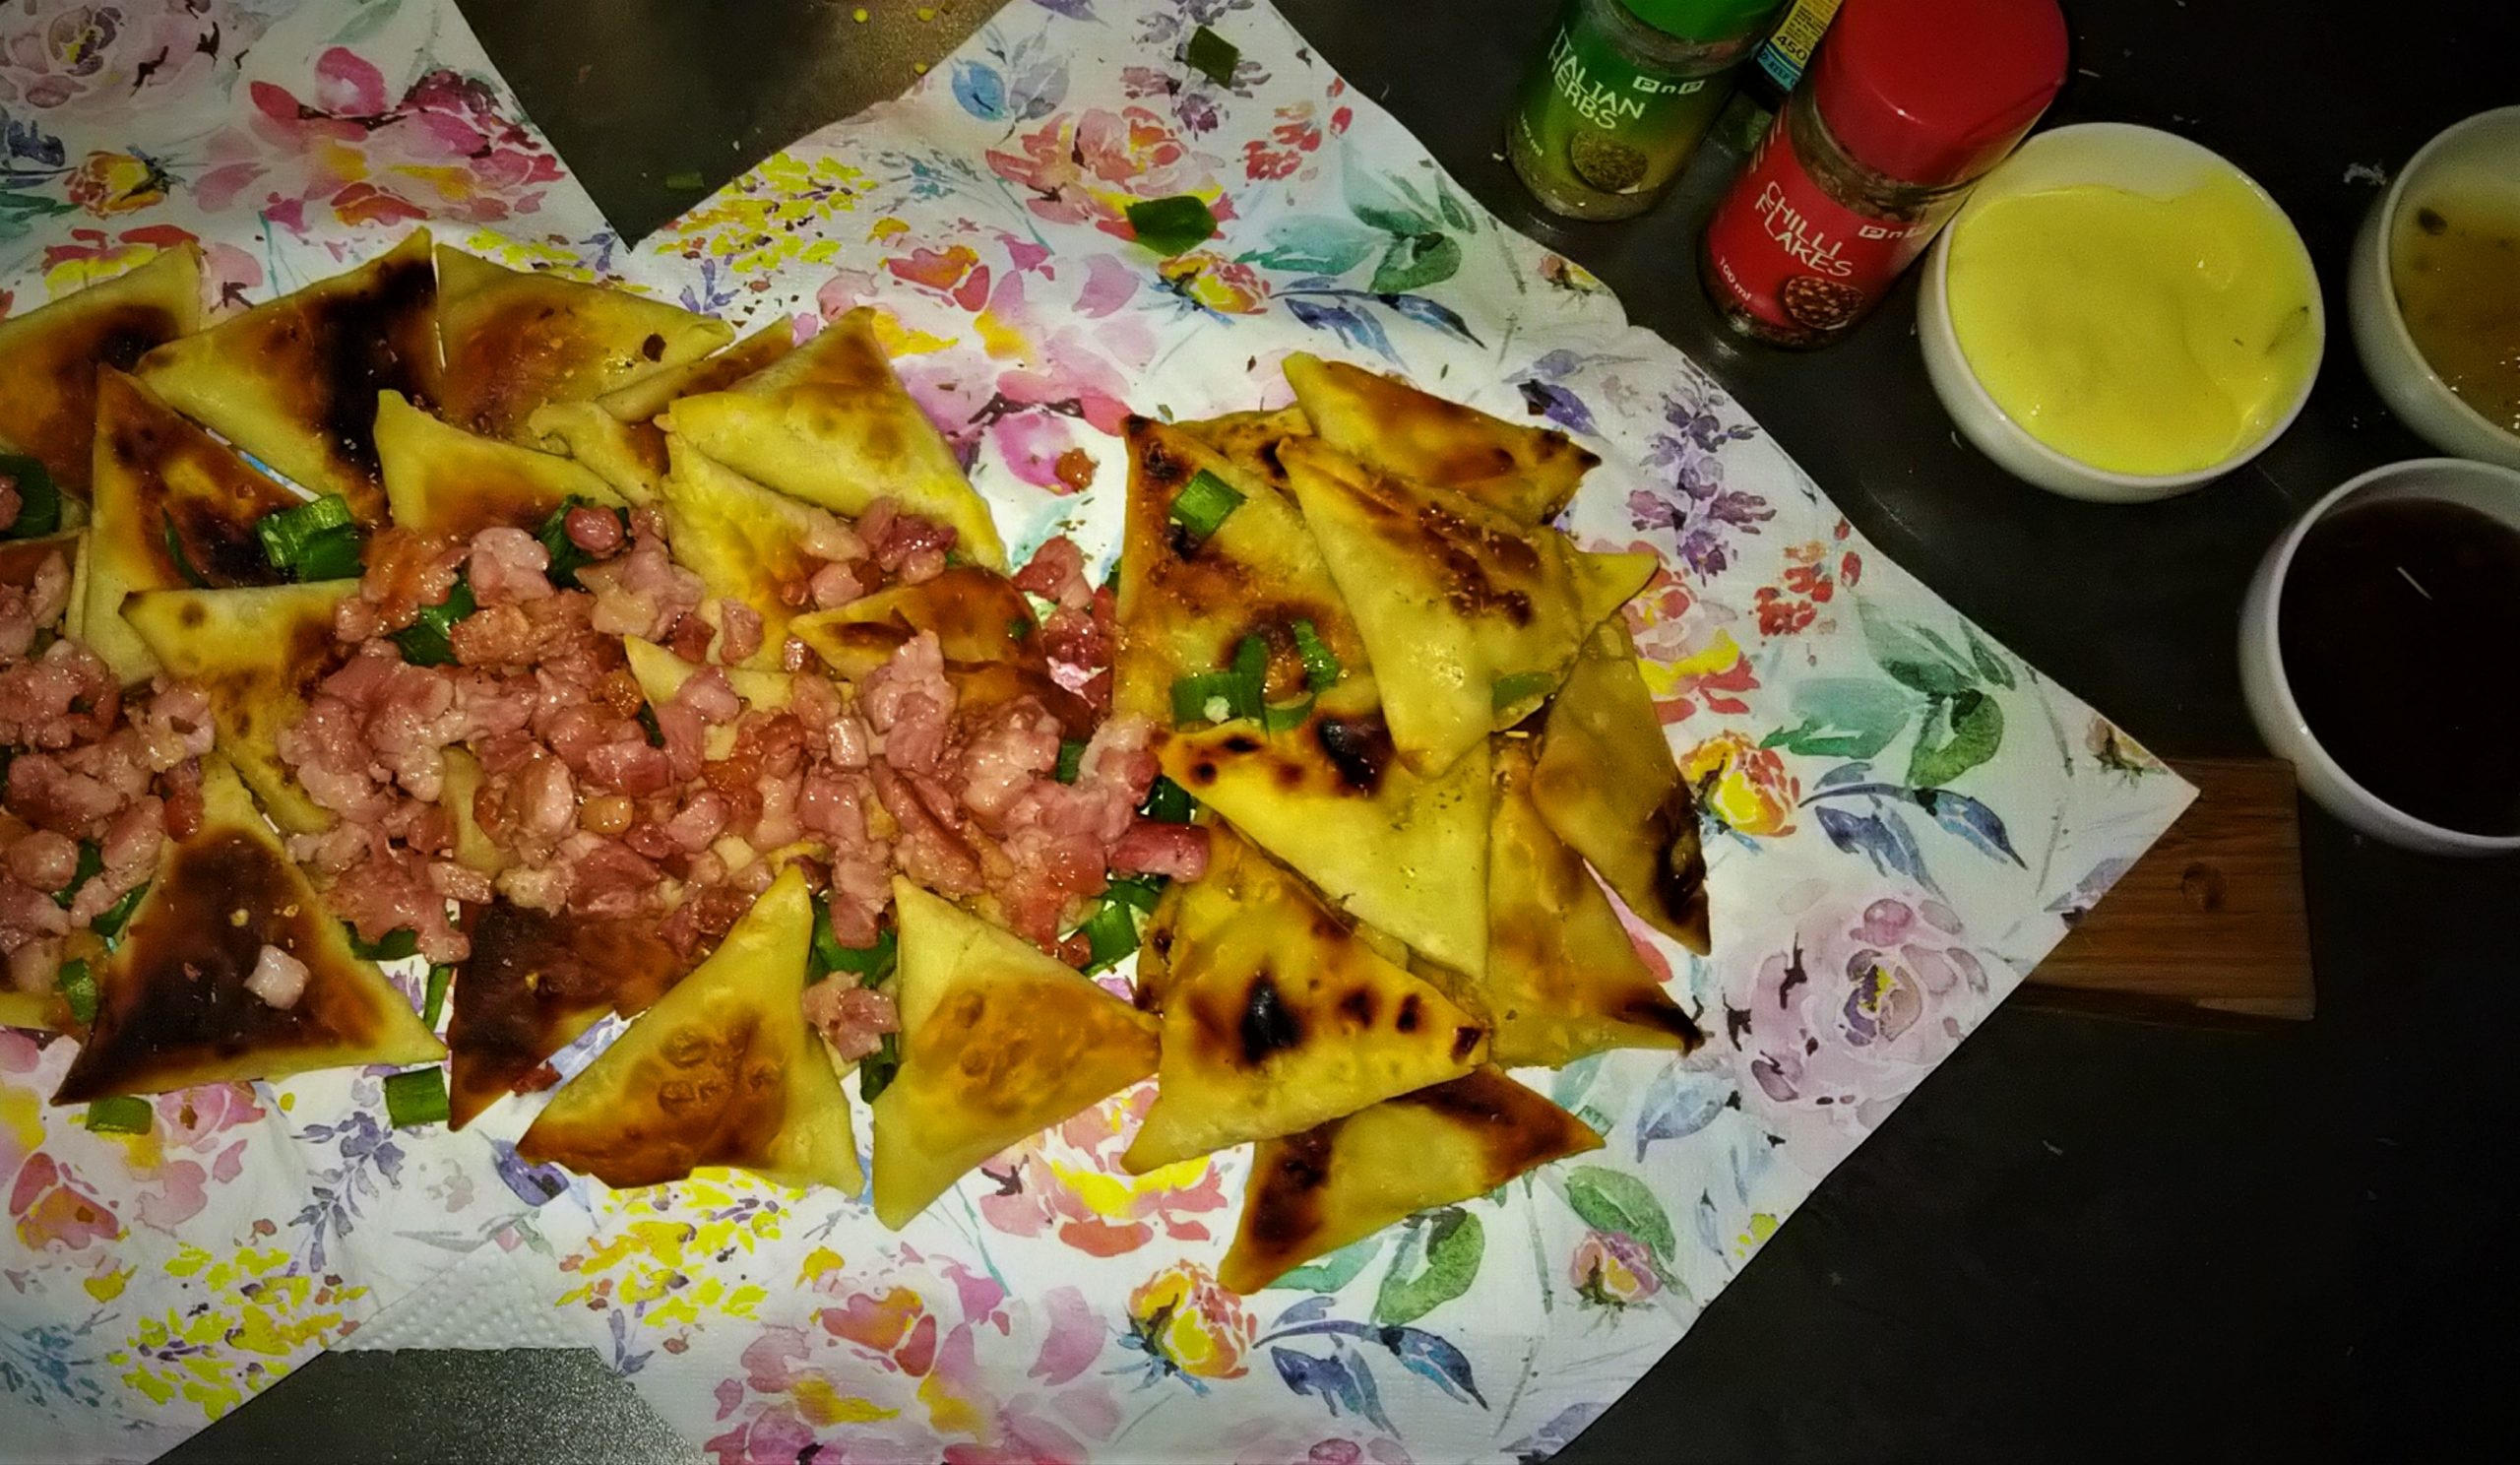 PnP Samoosa Beef, Chicken and Veggie served on a wooden platter and Floral Serviettes. Garnished with Spring Onion, Italian Herbs, Chilli Flakes and Bacon Bits. Served with Mayo, Chutney and Jalepino Sweet Chillie Sauce